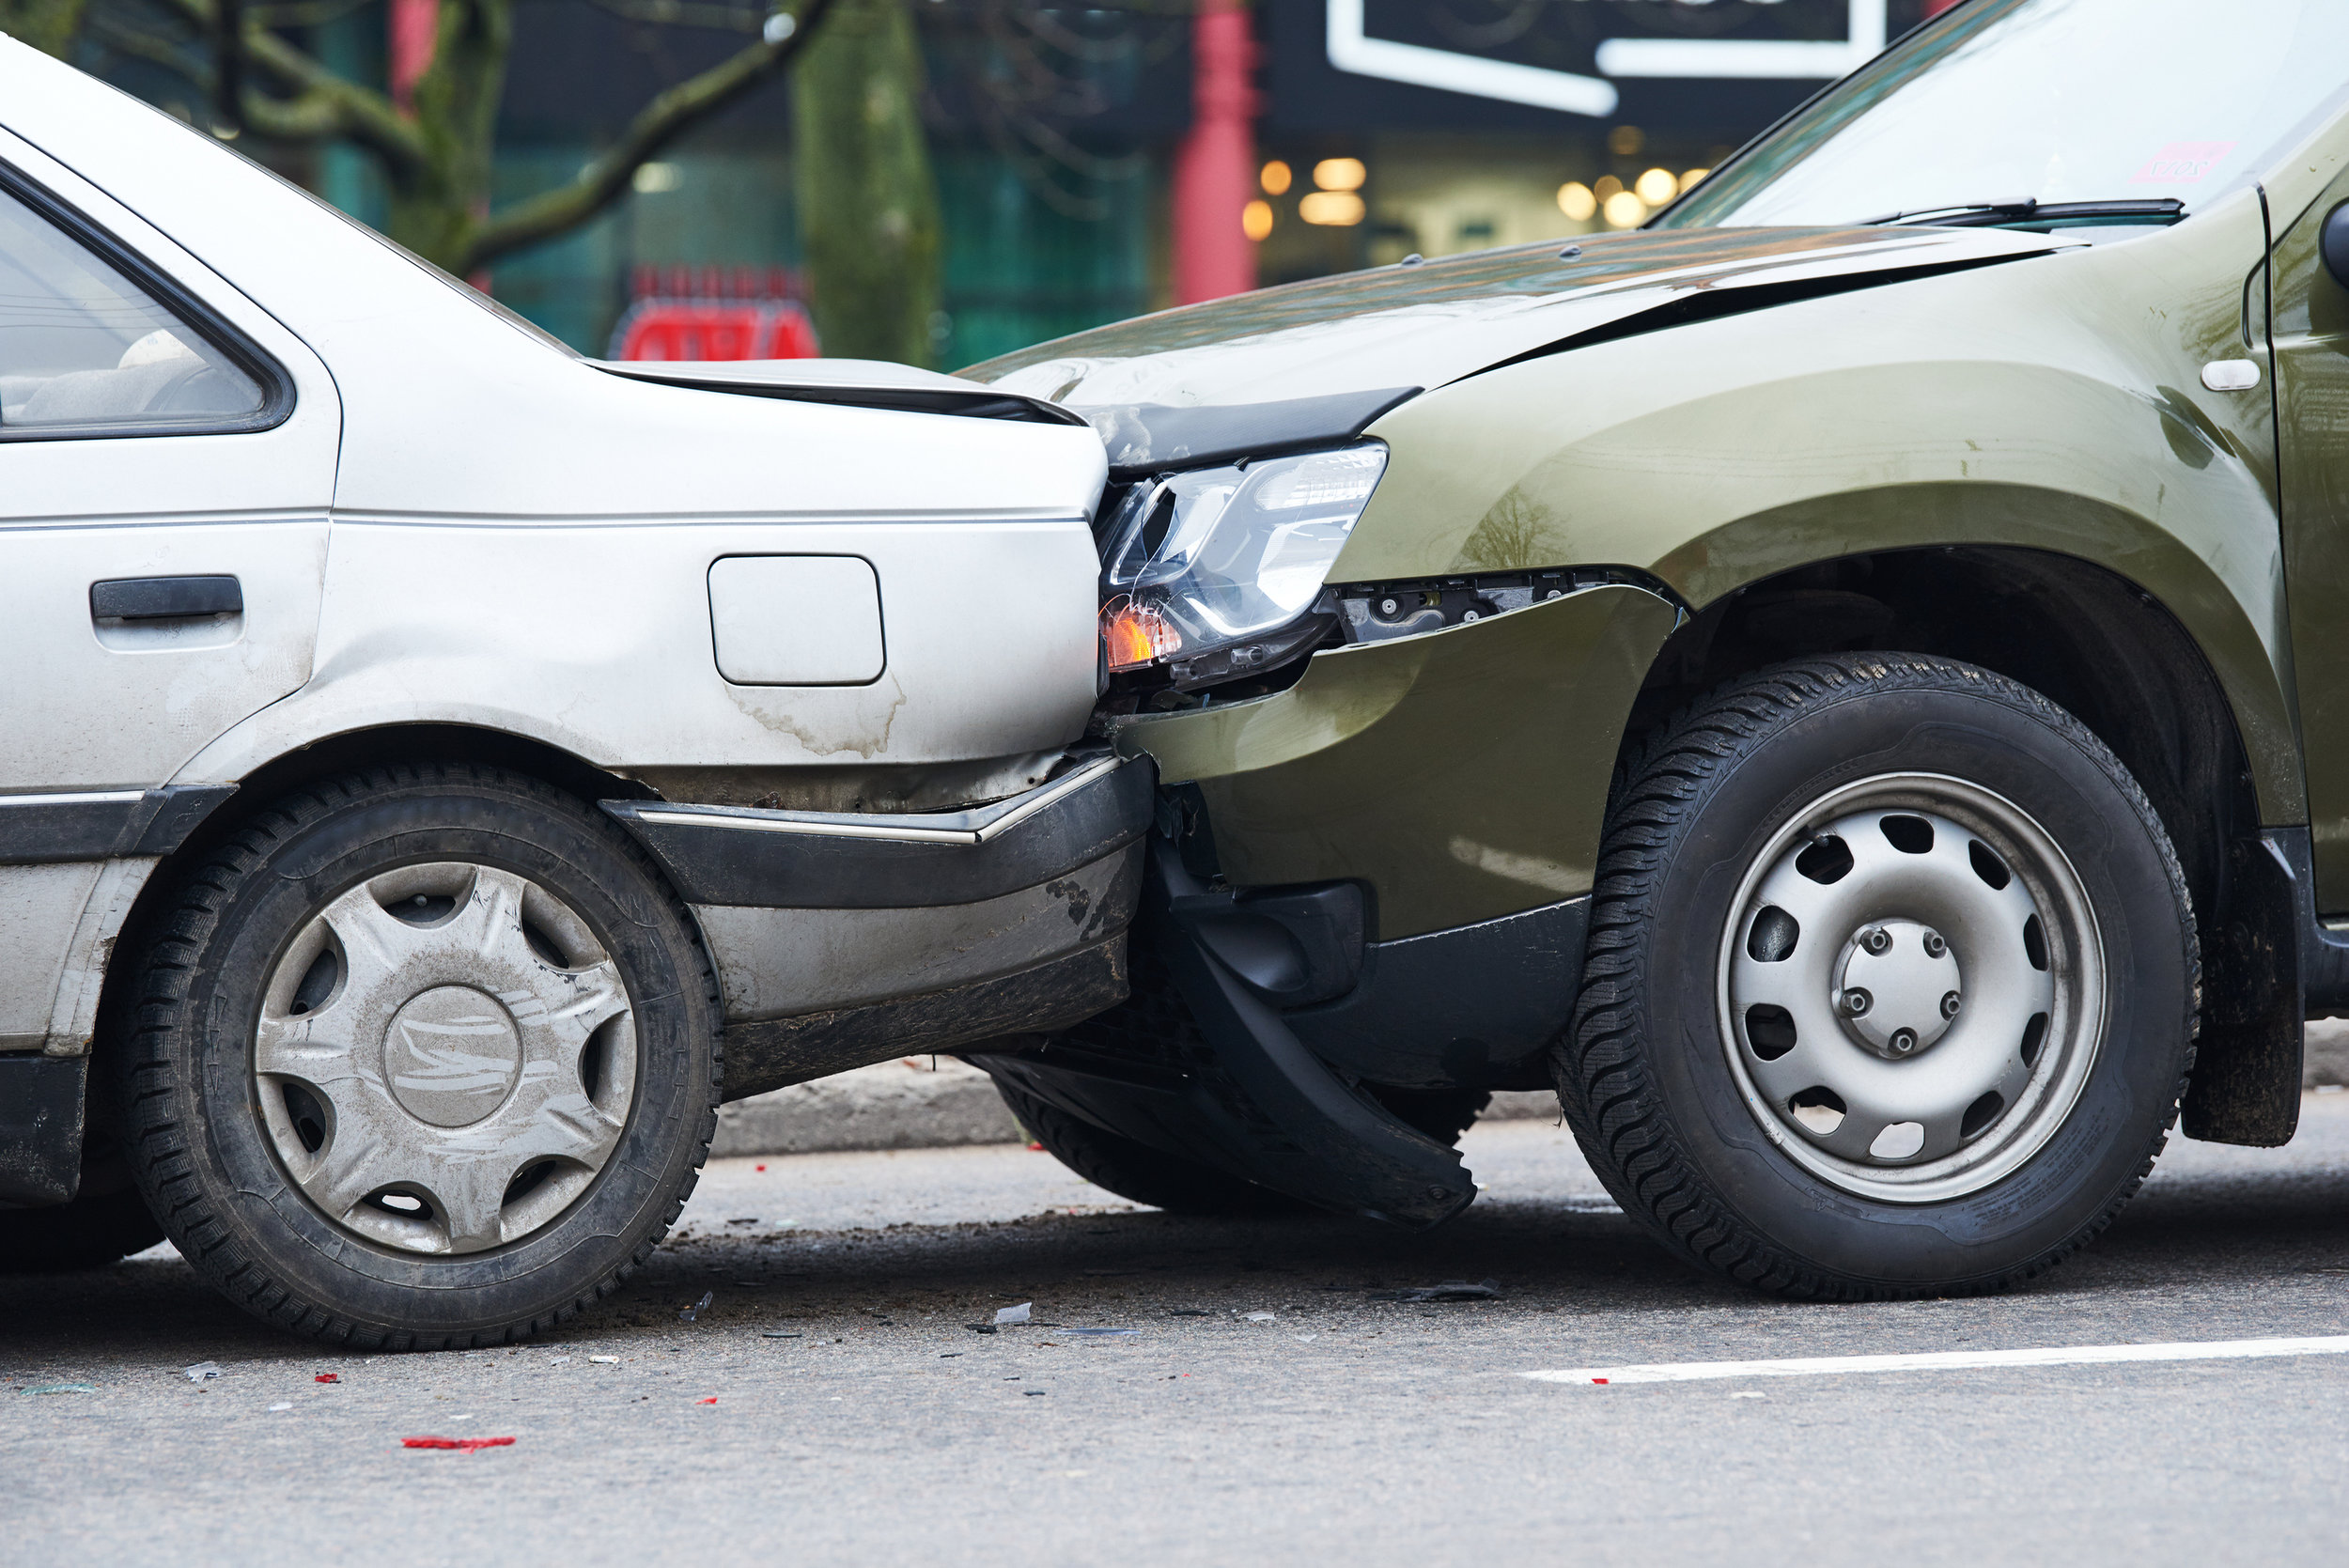 Personal Injury lawyers are familiar with car accidents and the injuries that result.  ©BigStockPhoto